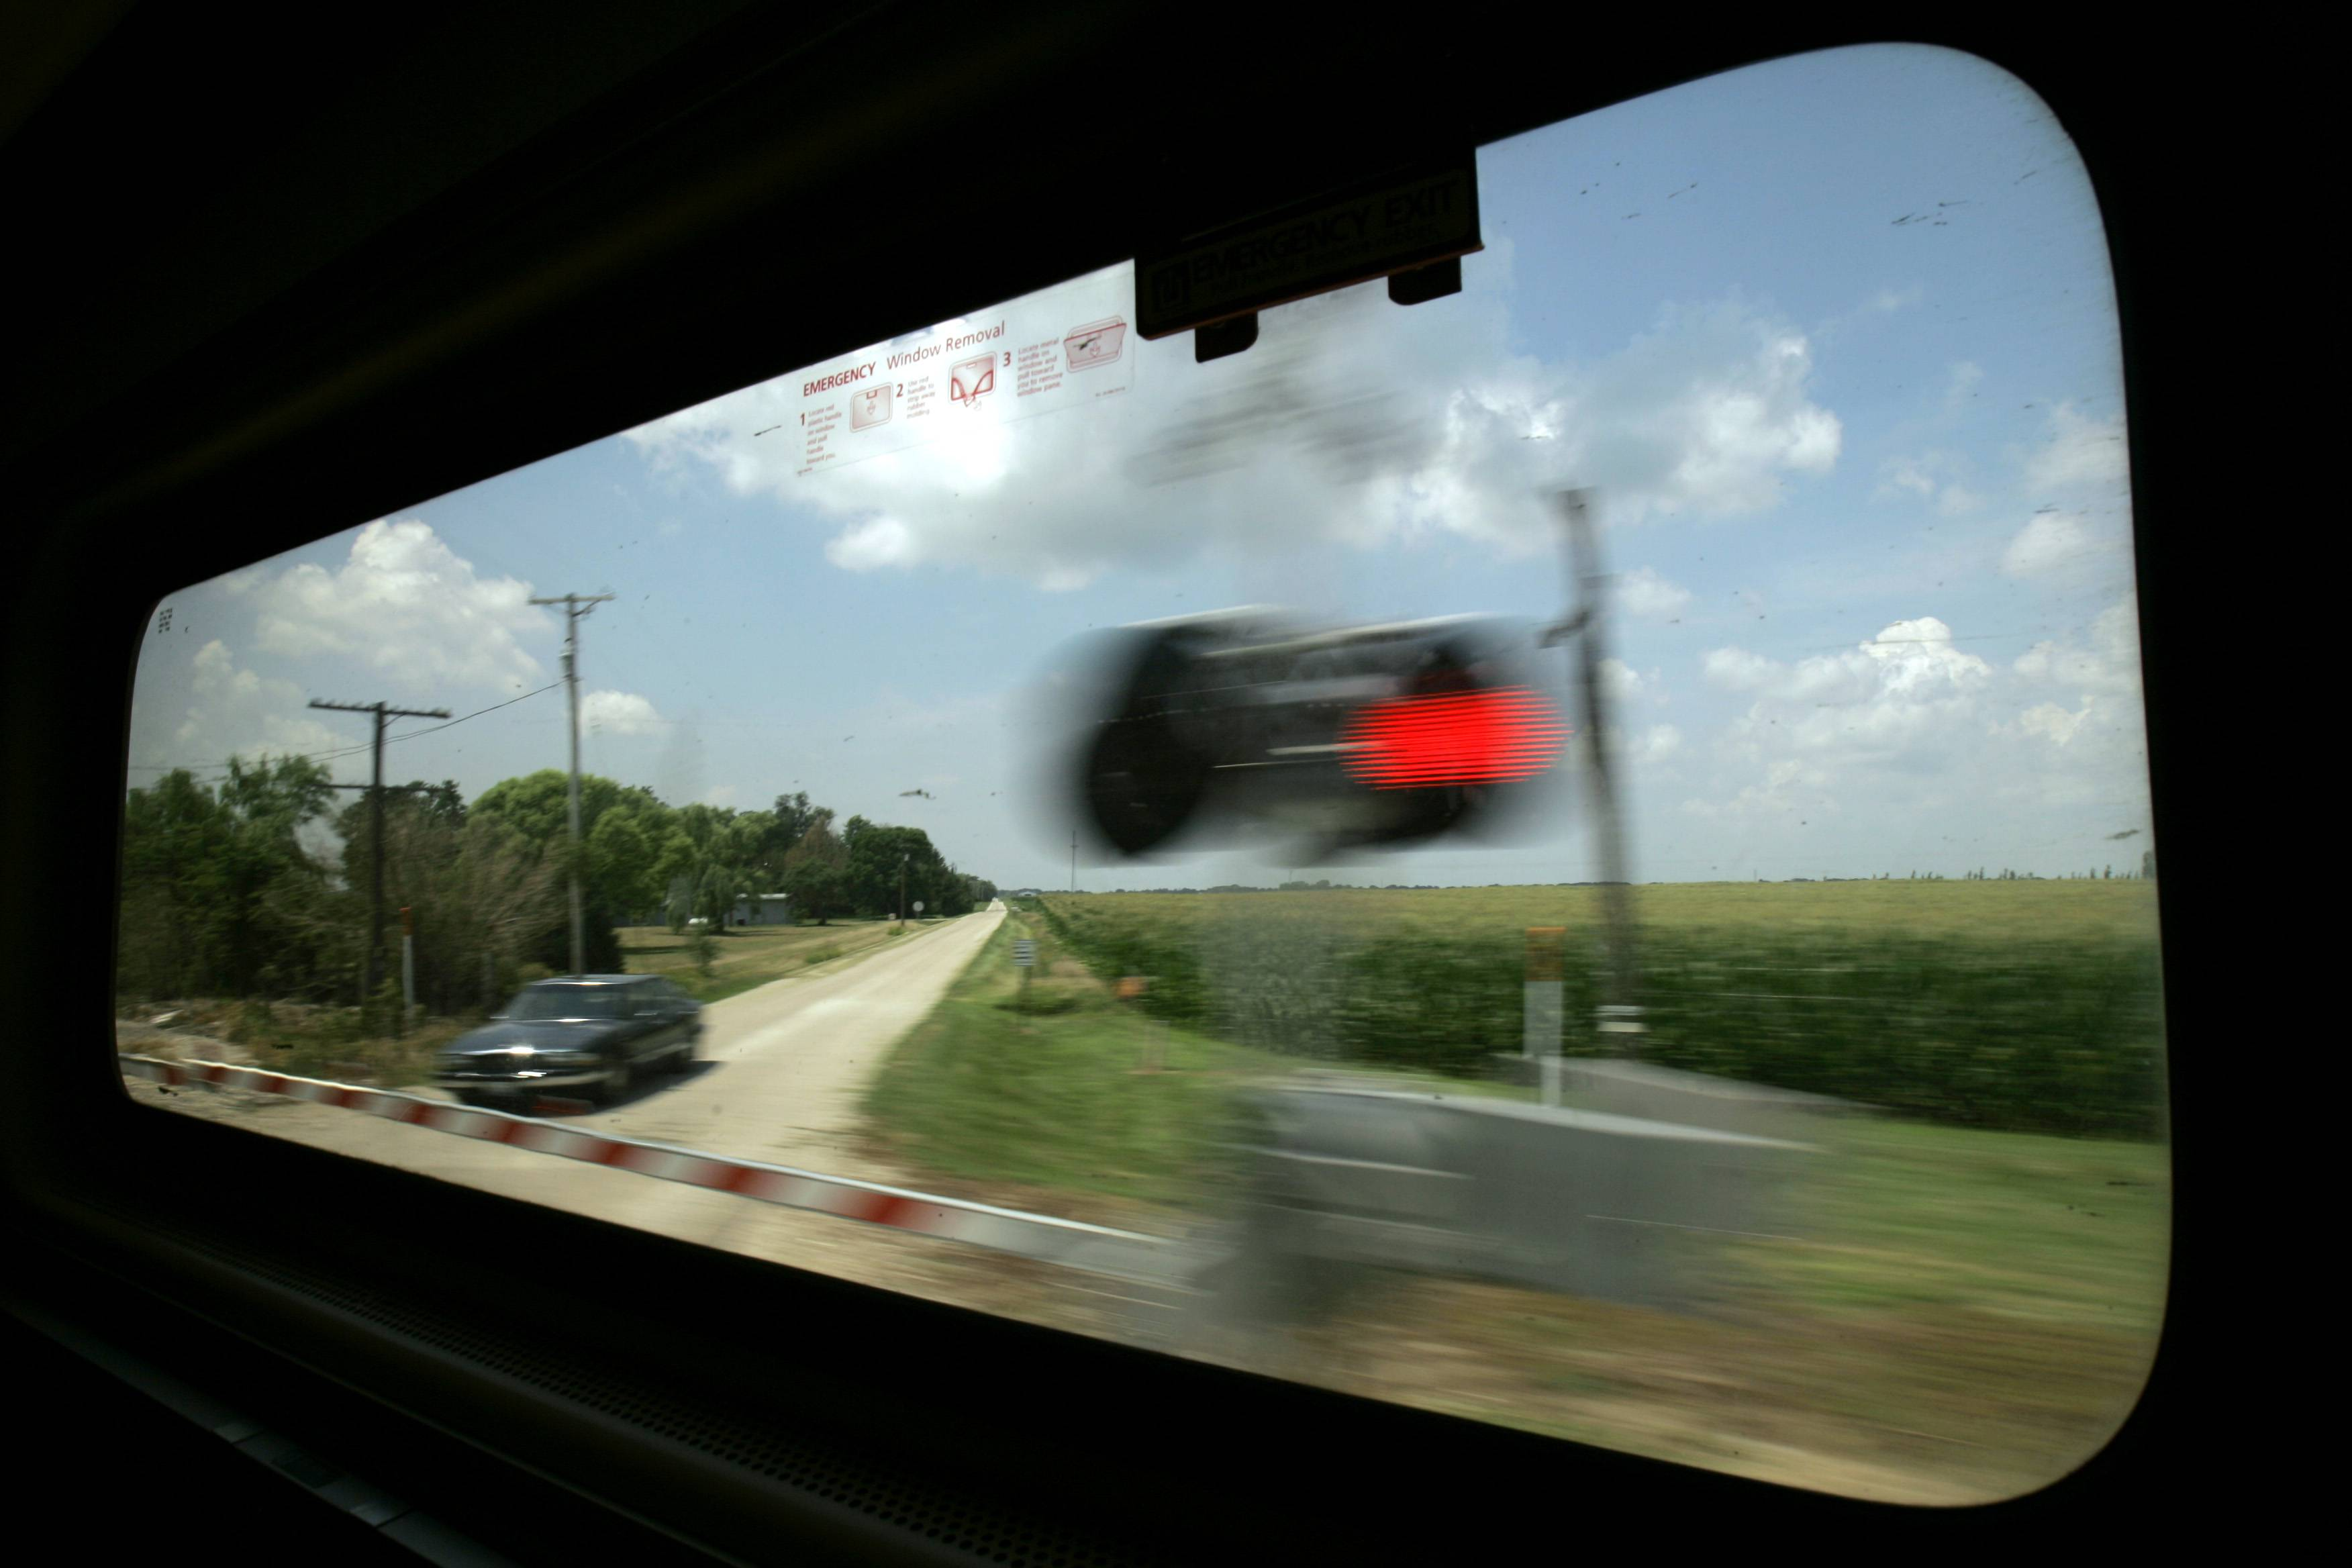 In this July 9, 2007, file photo Amtrak's Lincoln Service train passes Illinois cornfields en route to Chicago. The state of Illinois will spent $102 million to build a bridge over the Kankakee River along with other improvements as part of high-speed rail upgrades between Chicago and St. Louis.